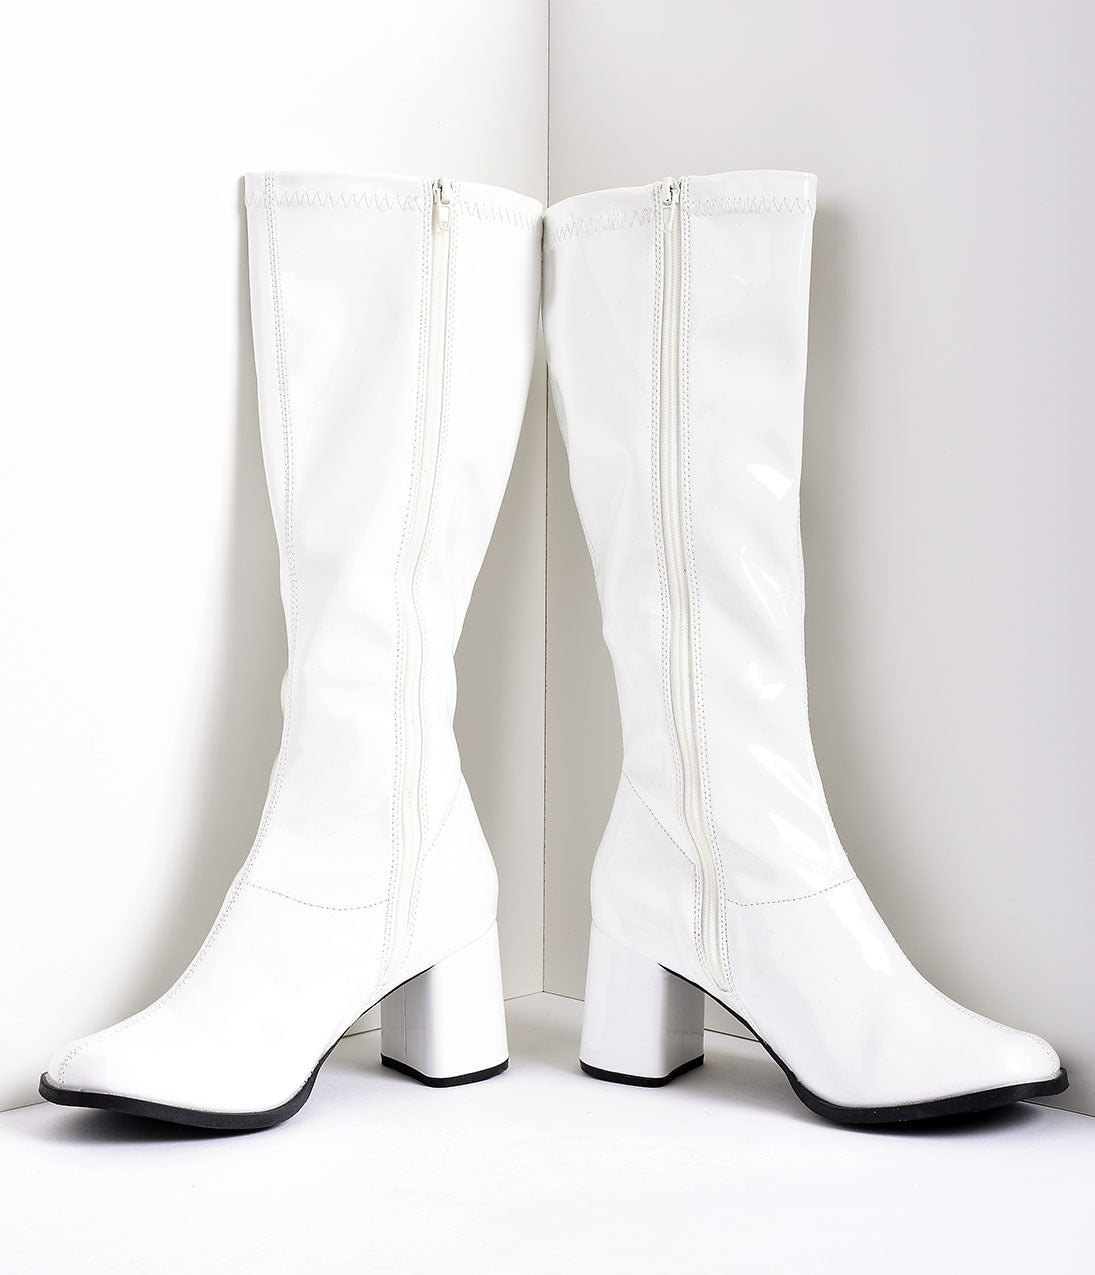 Vintage Shoes, Vintage Style Shoes White Stretch Patent Knee High Go Go Boots $58.00 AT vintagedancer.com